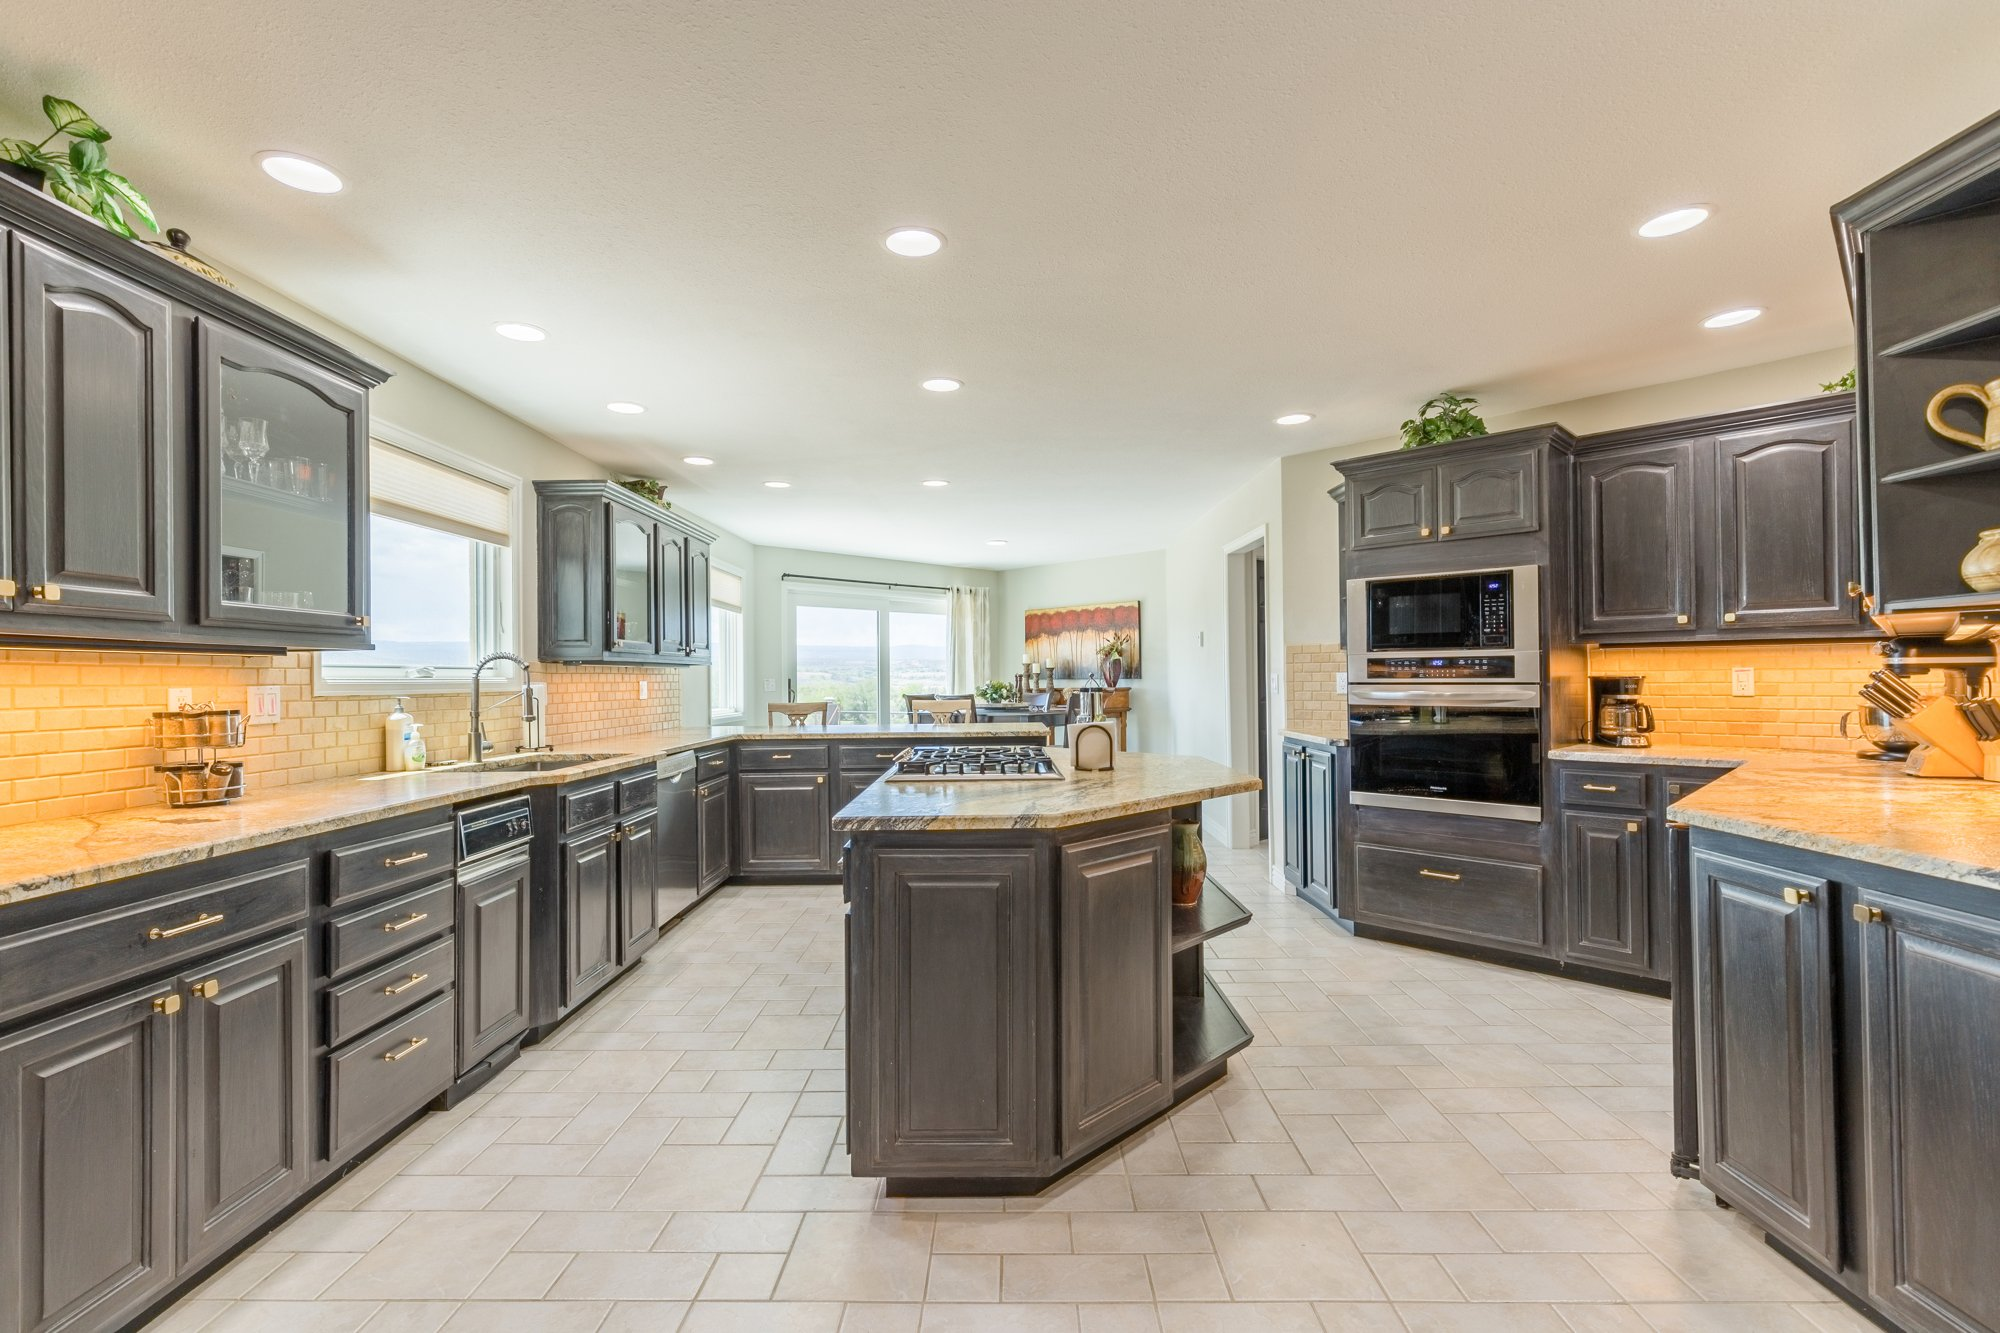 Remodeled Kitchen - 16955 Wildwood Dr. Montrose, CO 81403 - Atha Team Luxury Real Estate